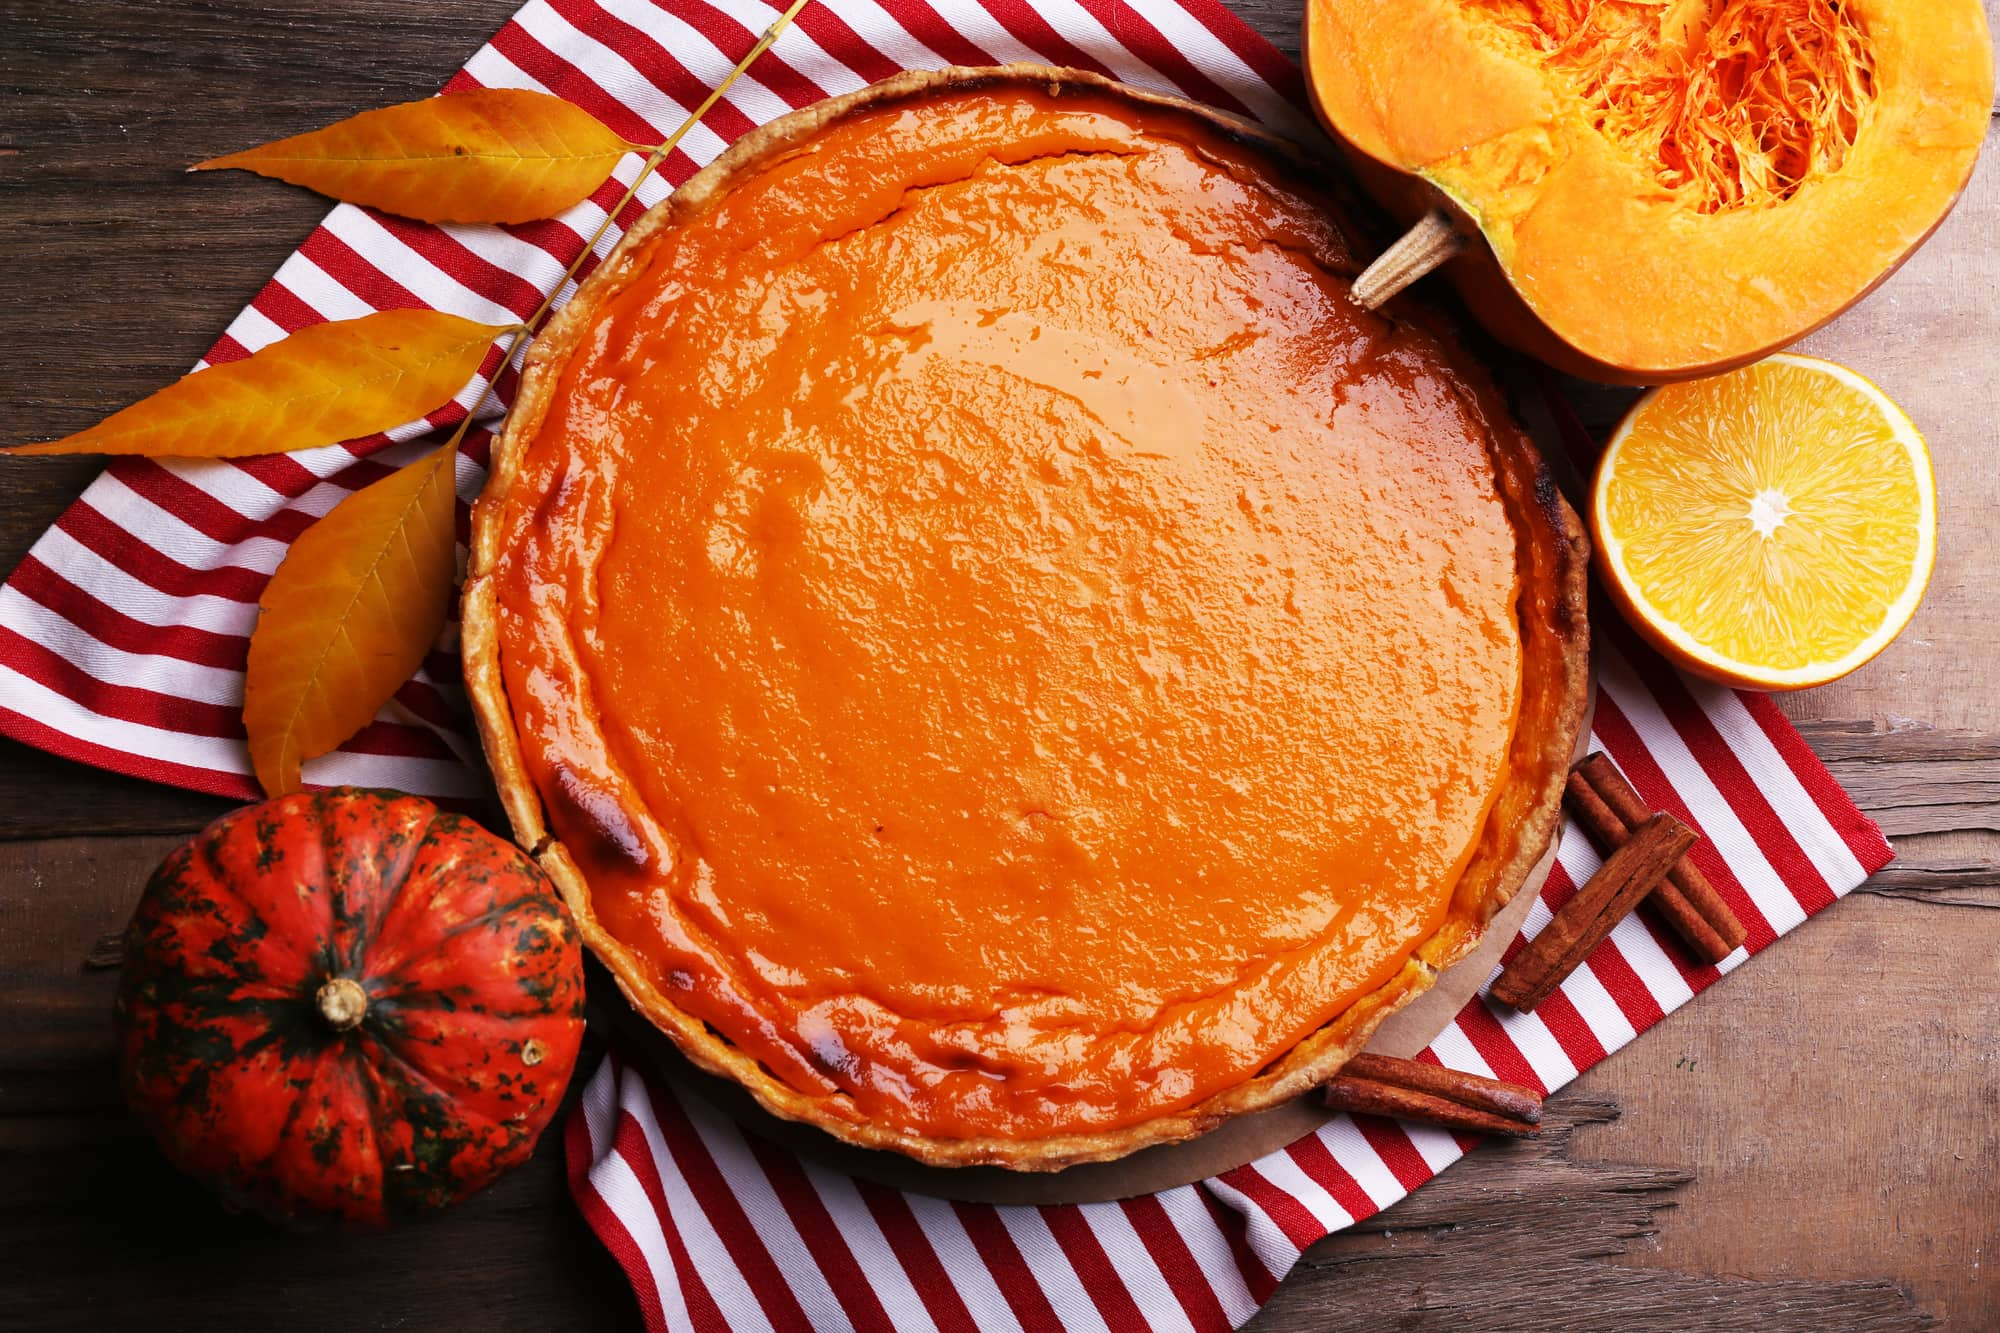 Homemade pumpkin pie on napkin, on wooden background